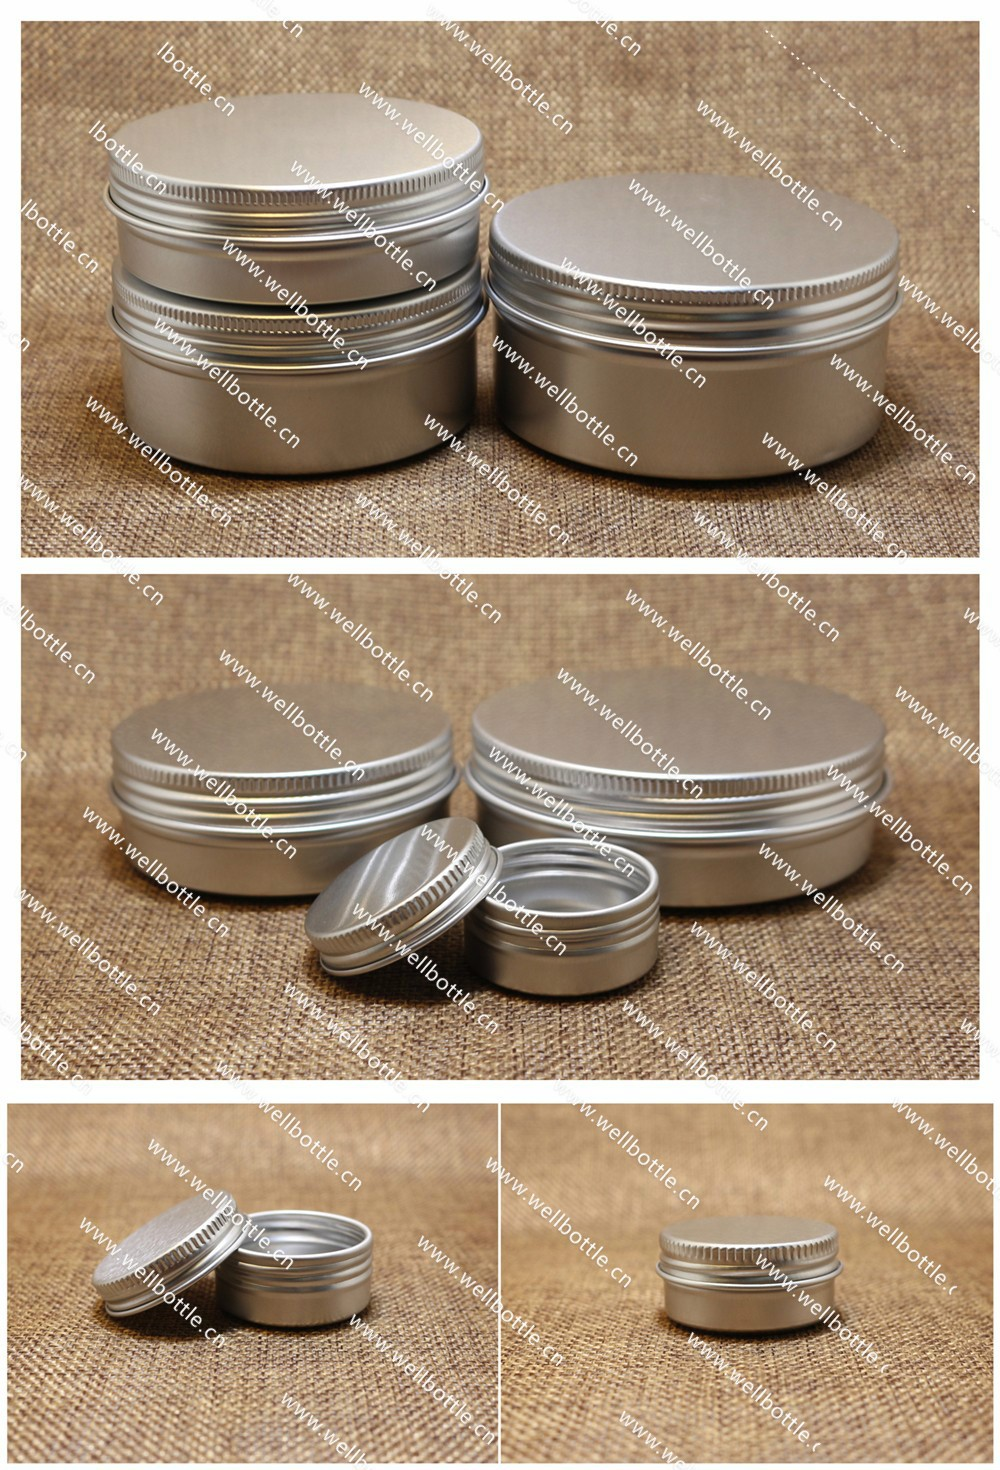 5g 10g 15g 20g 30g 50g 60g 80g 100g 120g 150g 200g 300g 500g aluminum jar for food Hair wax Lipstick Solid Perf AJ8888R